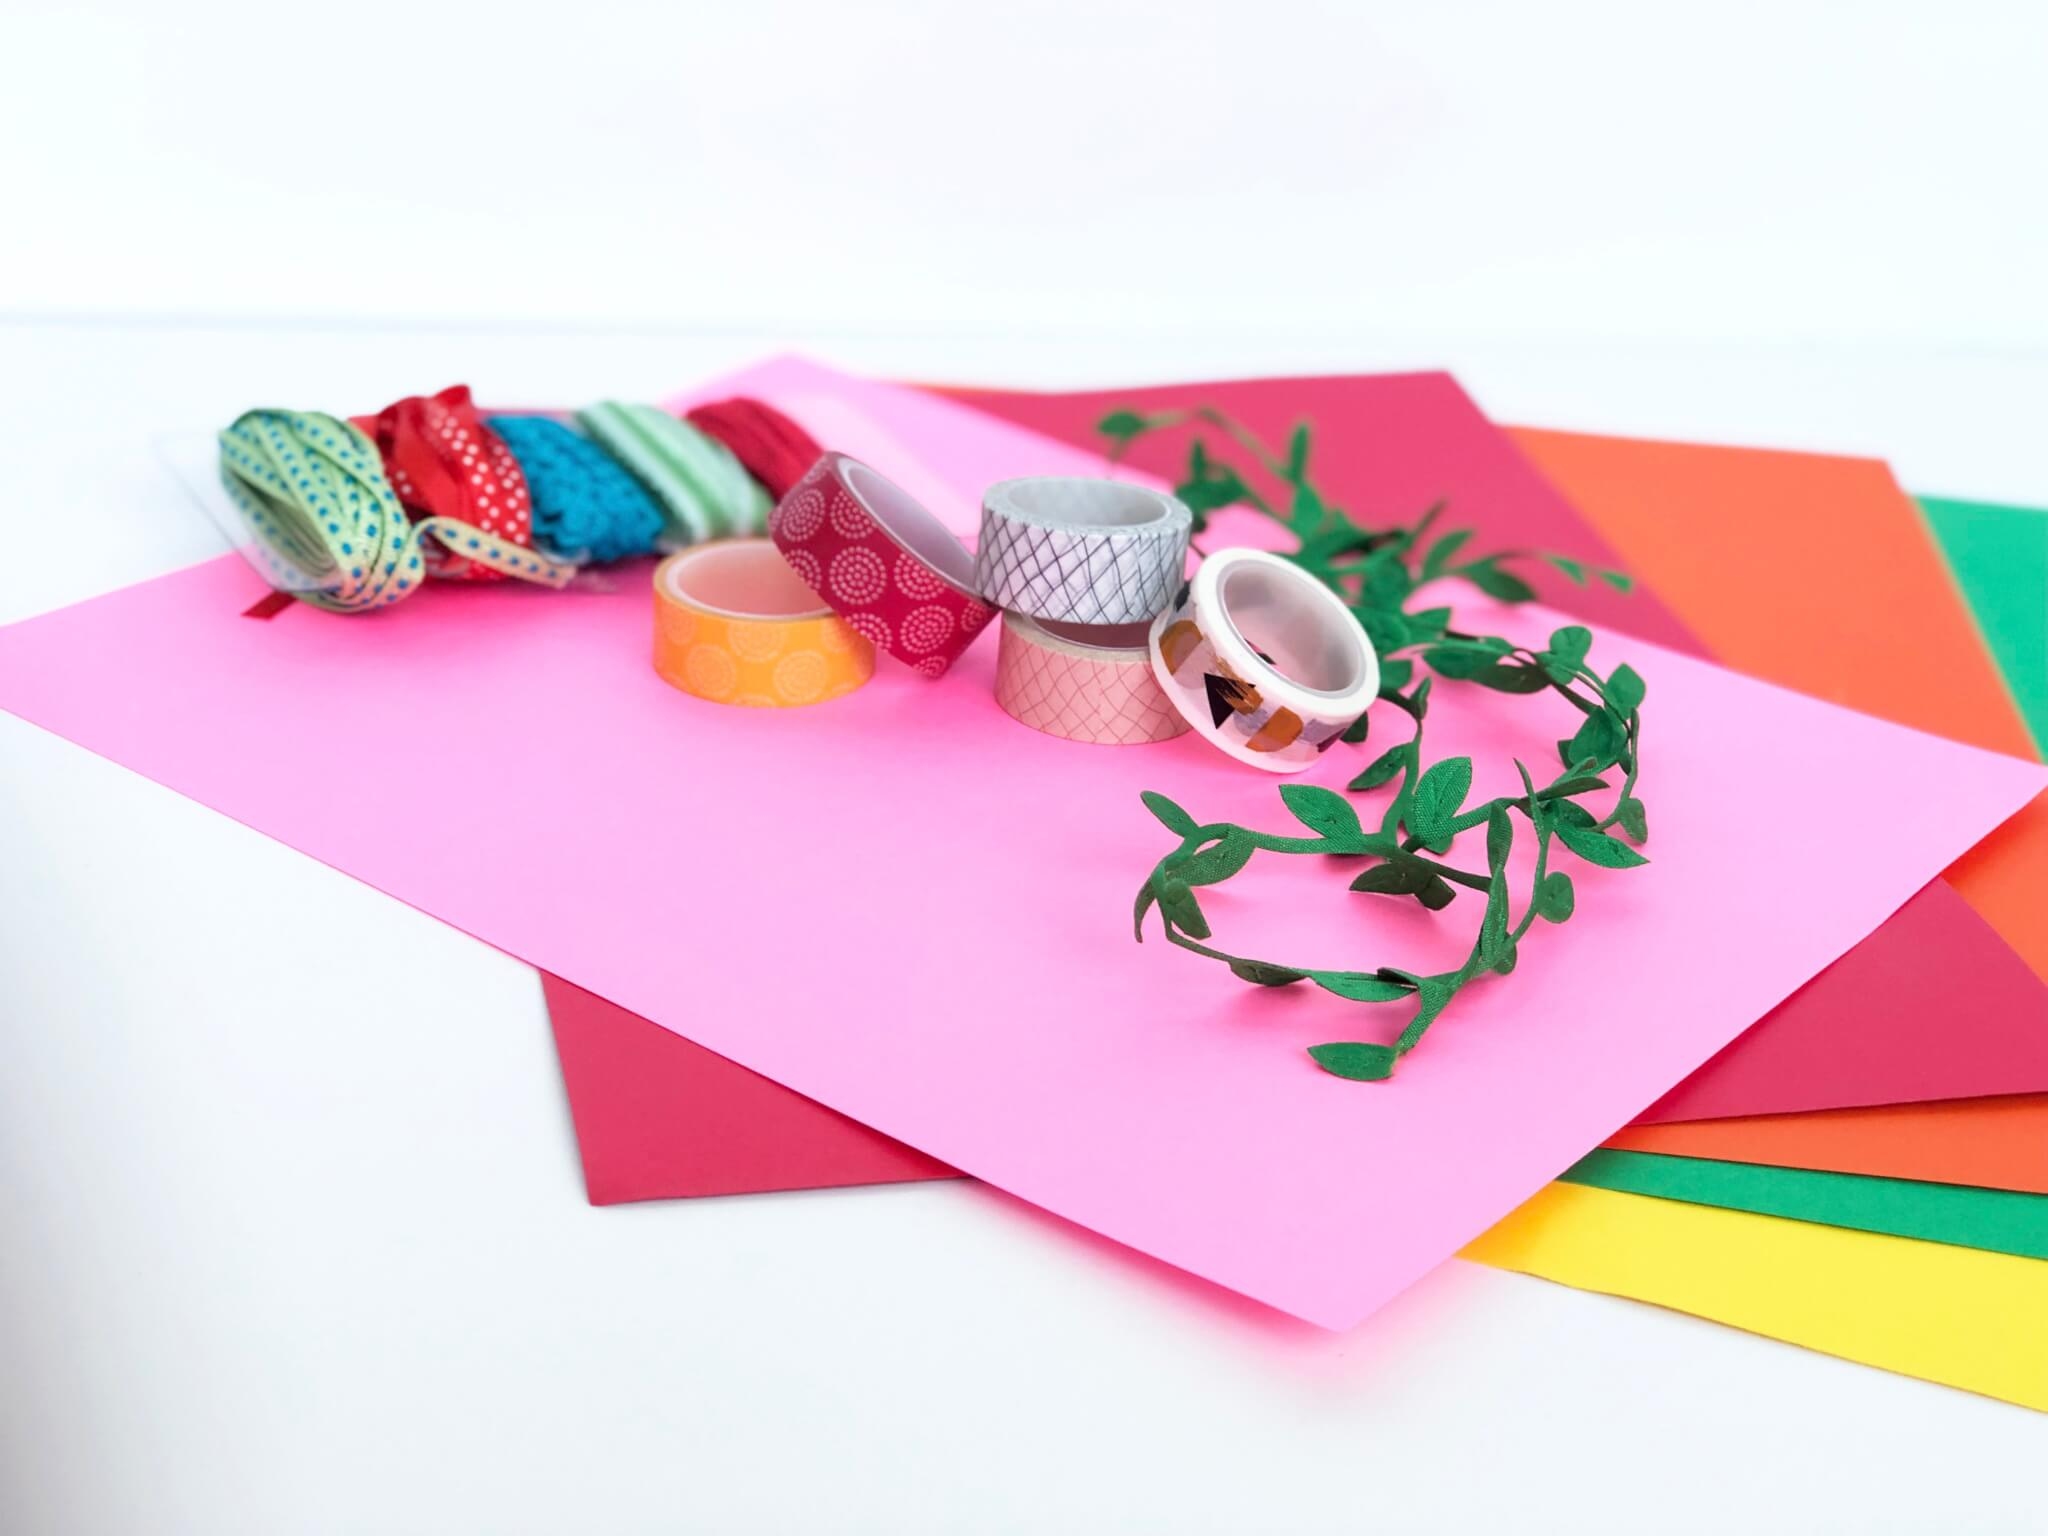 Craft supply with washi tapes